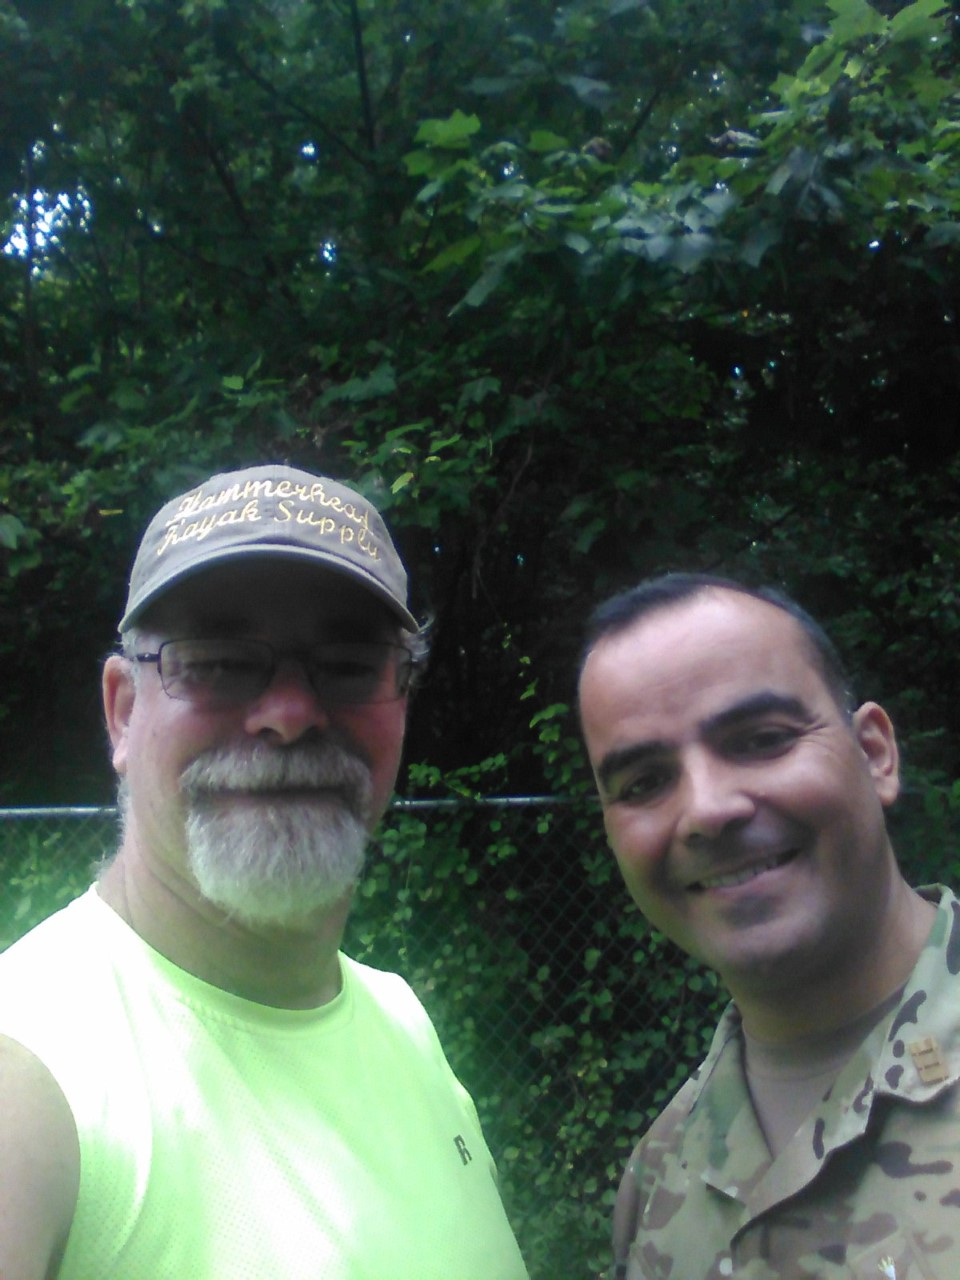 Lieutenant Colonel Enrique Soto and Me After Delivering Kayaks